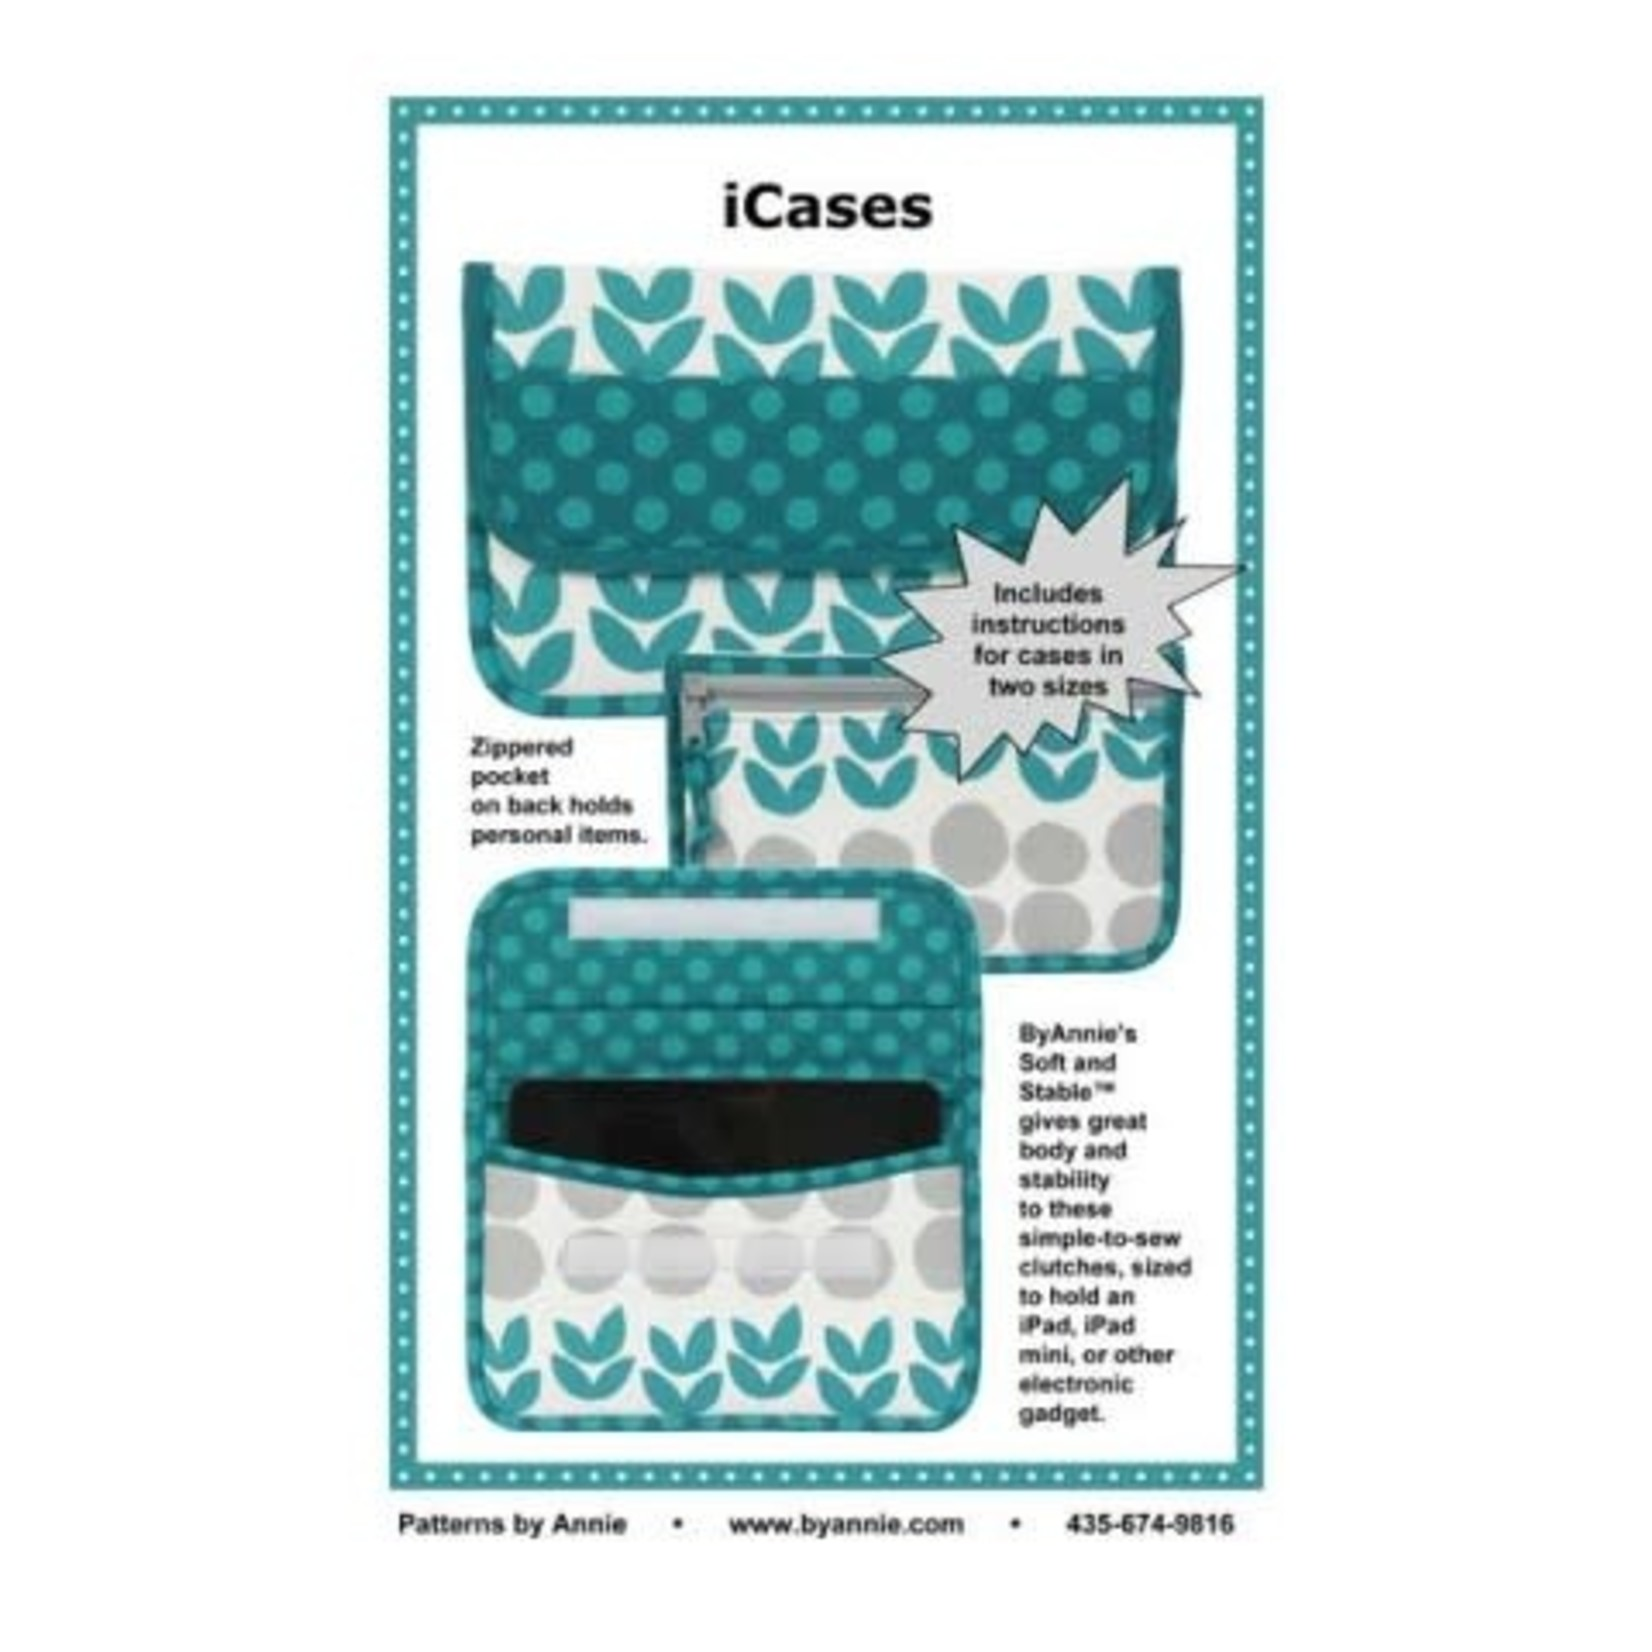 By Annie ICASES  PATTERN AND KIT